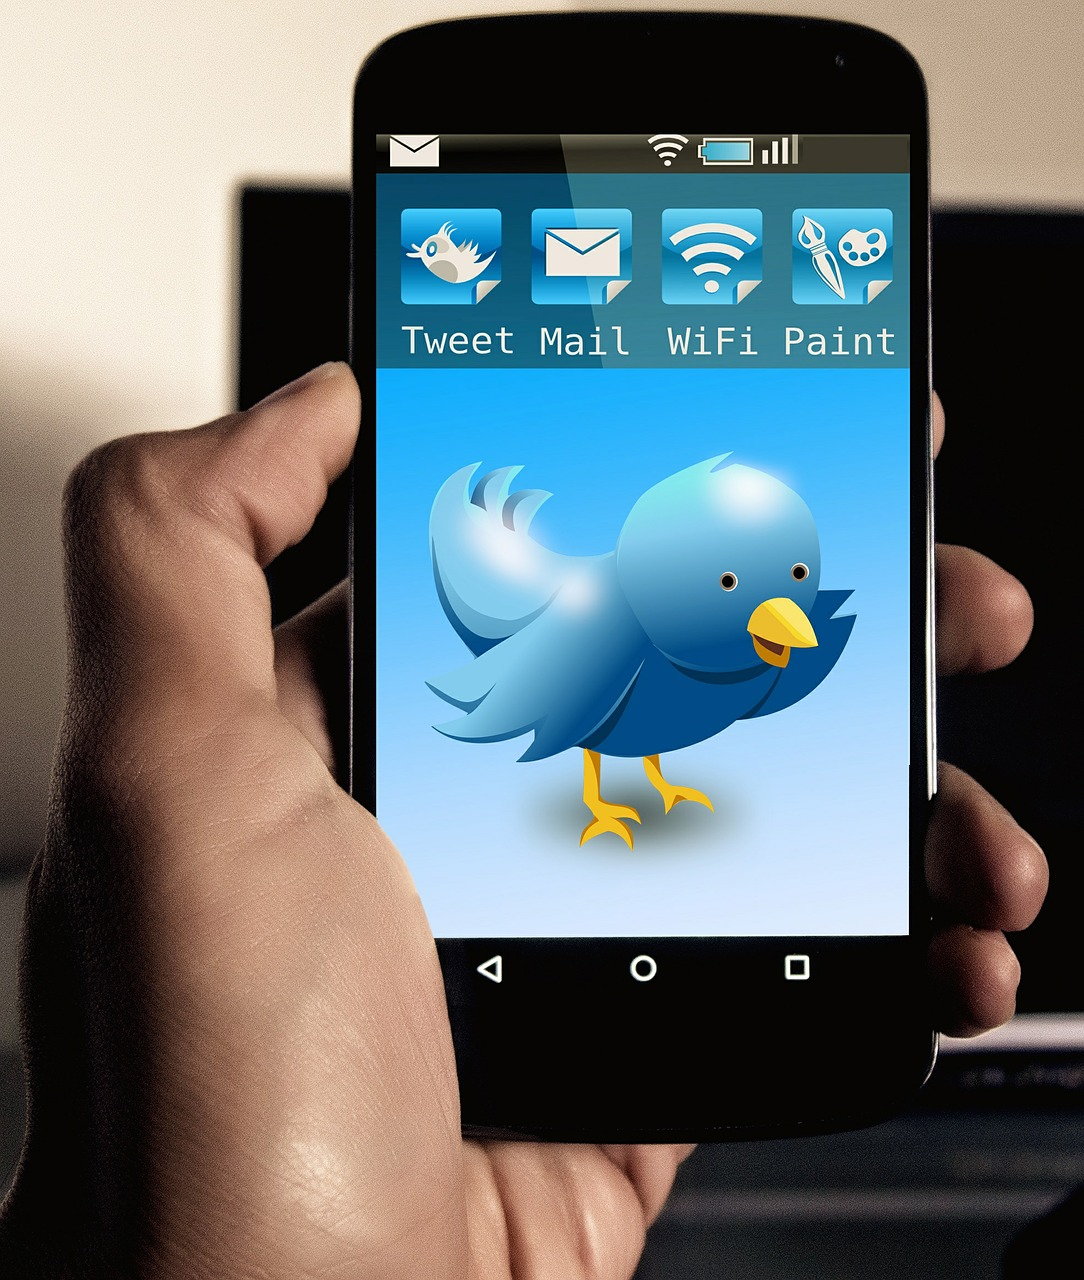 Learn How to Get More Twitter Followers in this post...